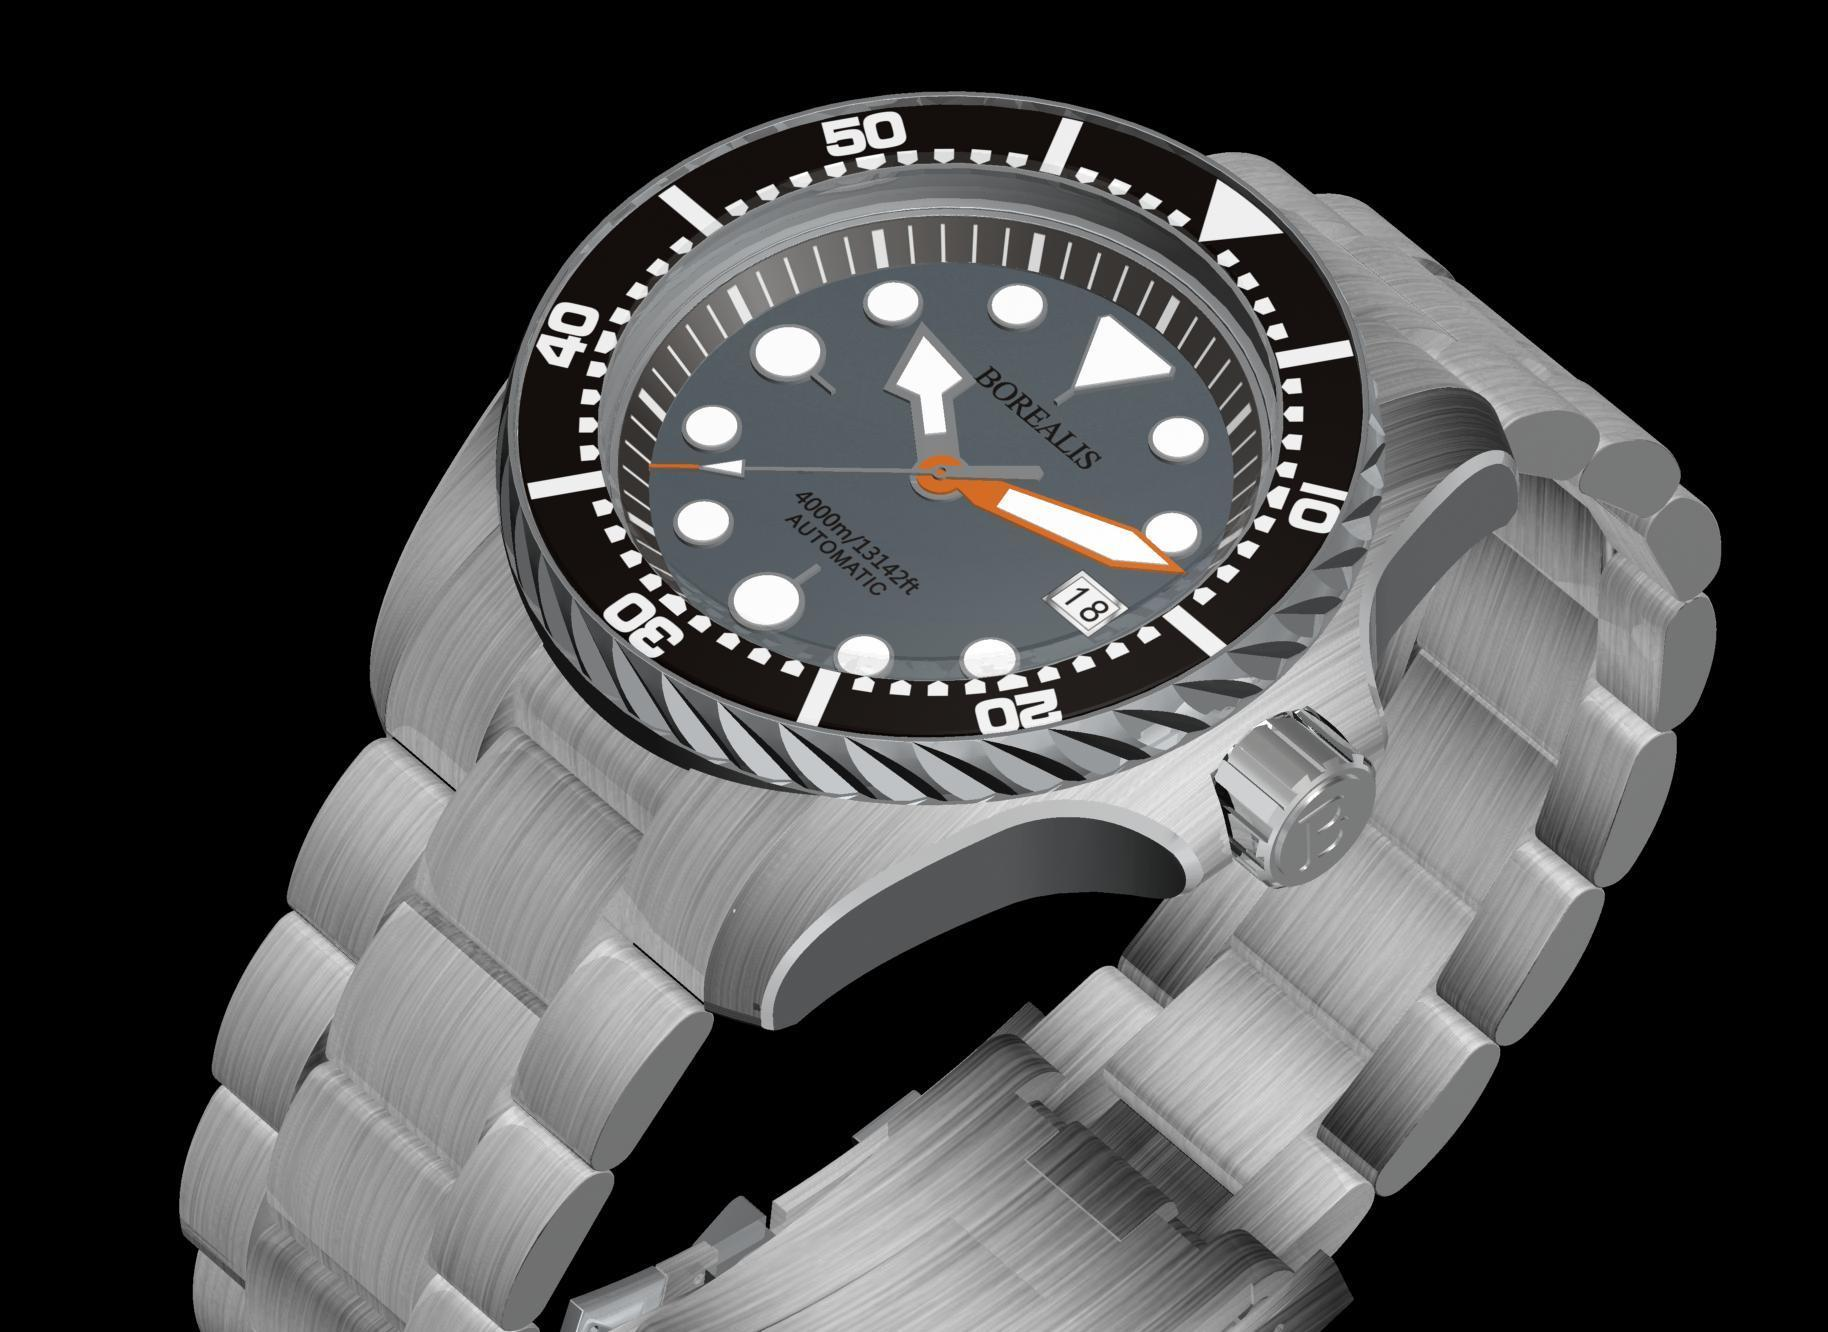 Borealis Seafarer II Stainless Steel Gray BGW9 Sapphire Turbine Style Grip Bezel 4000m Miyota 9015 Automatic Diver Watch